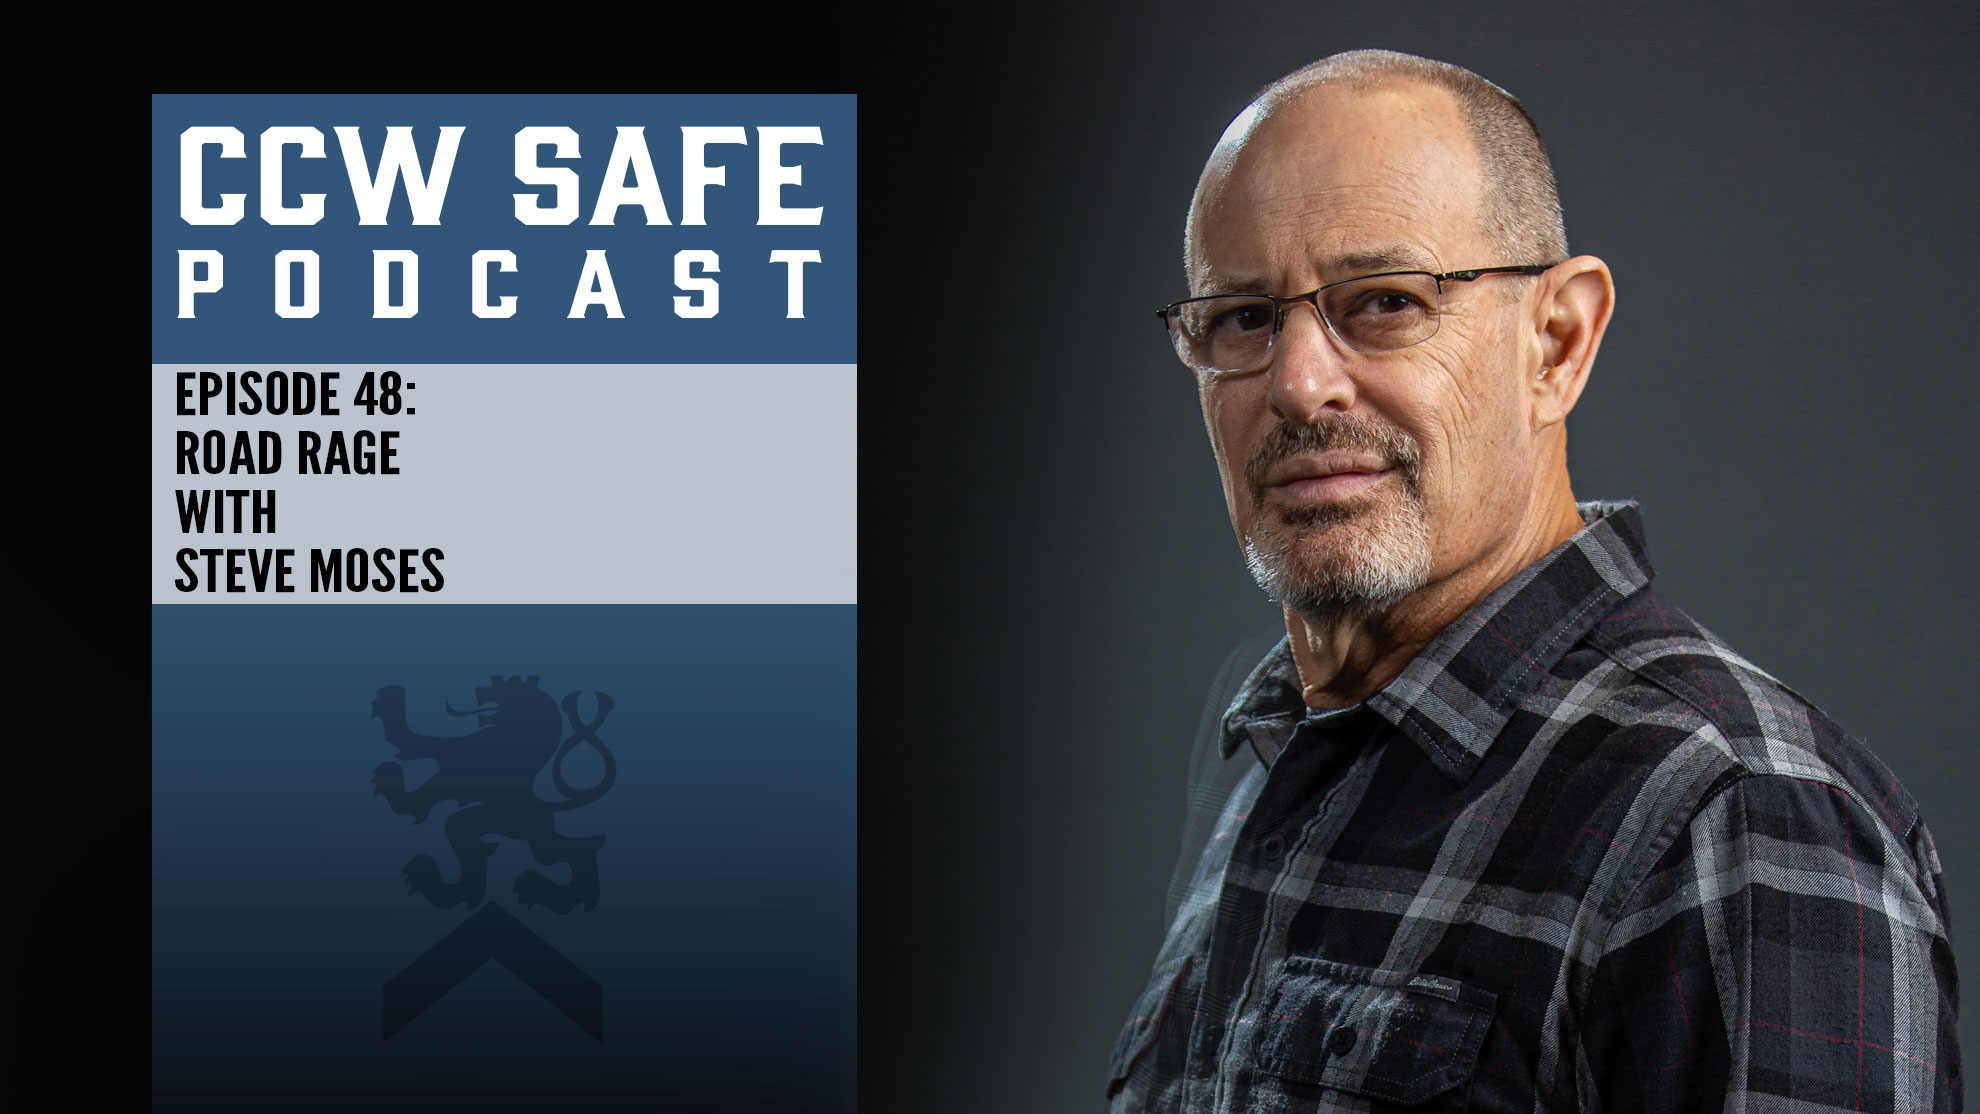 CCW Safe Podcast- Episode 48: Road Rage with Steve Moses